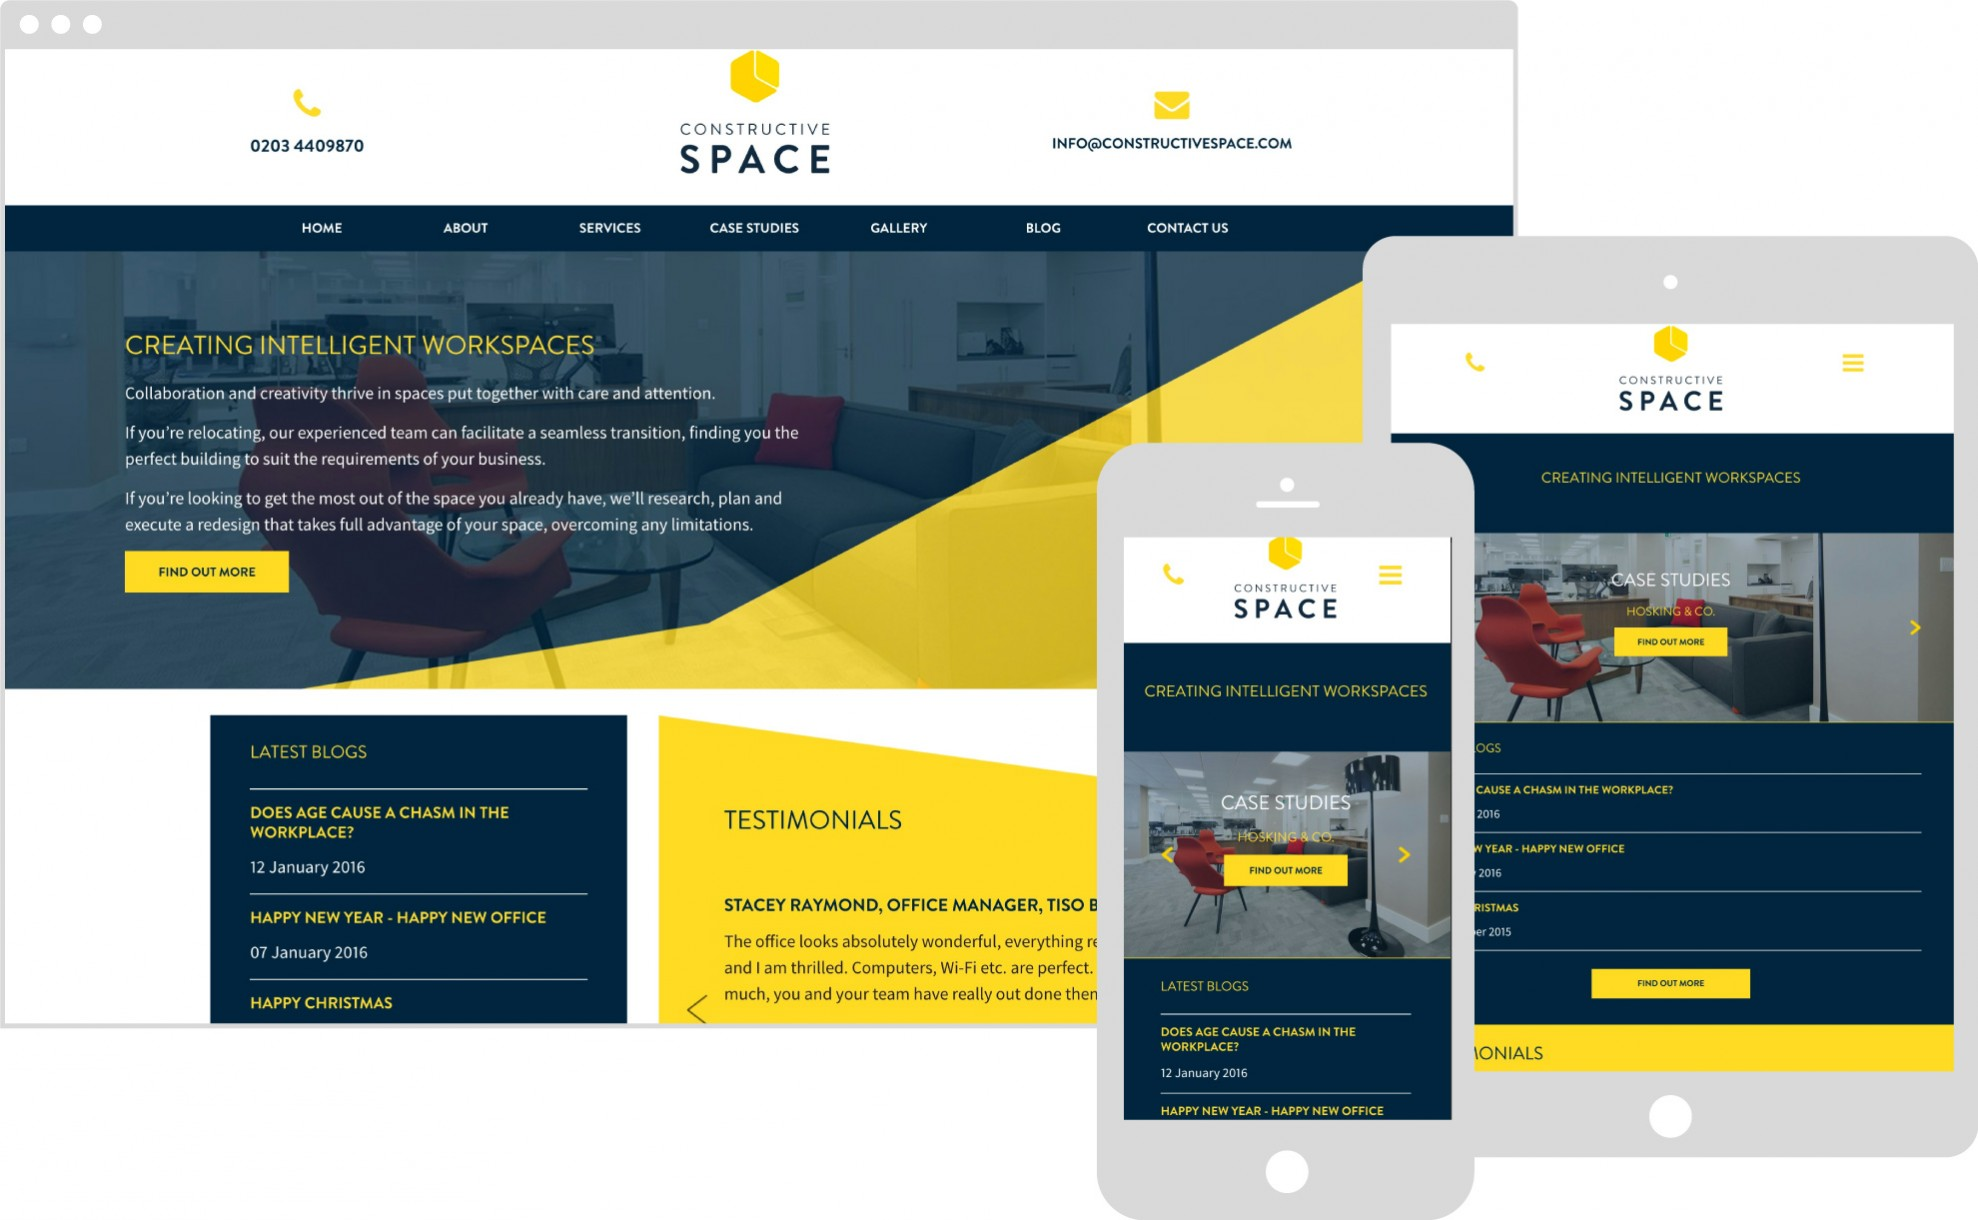 Constructive space perch website on multiple devices